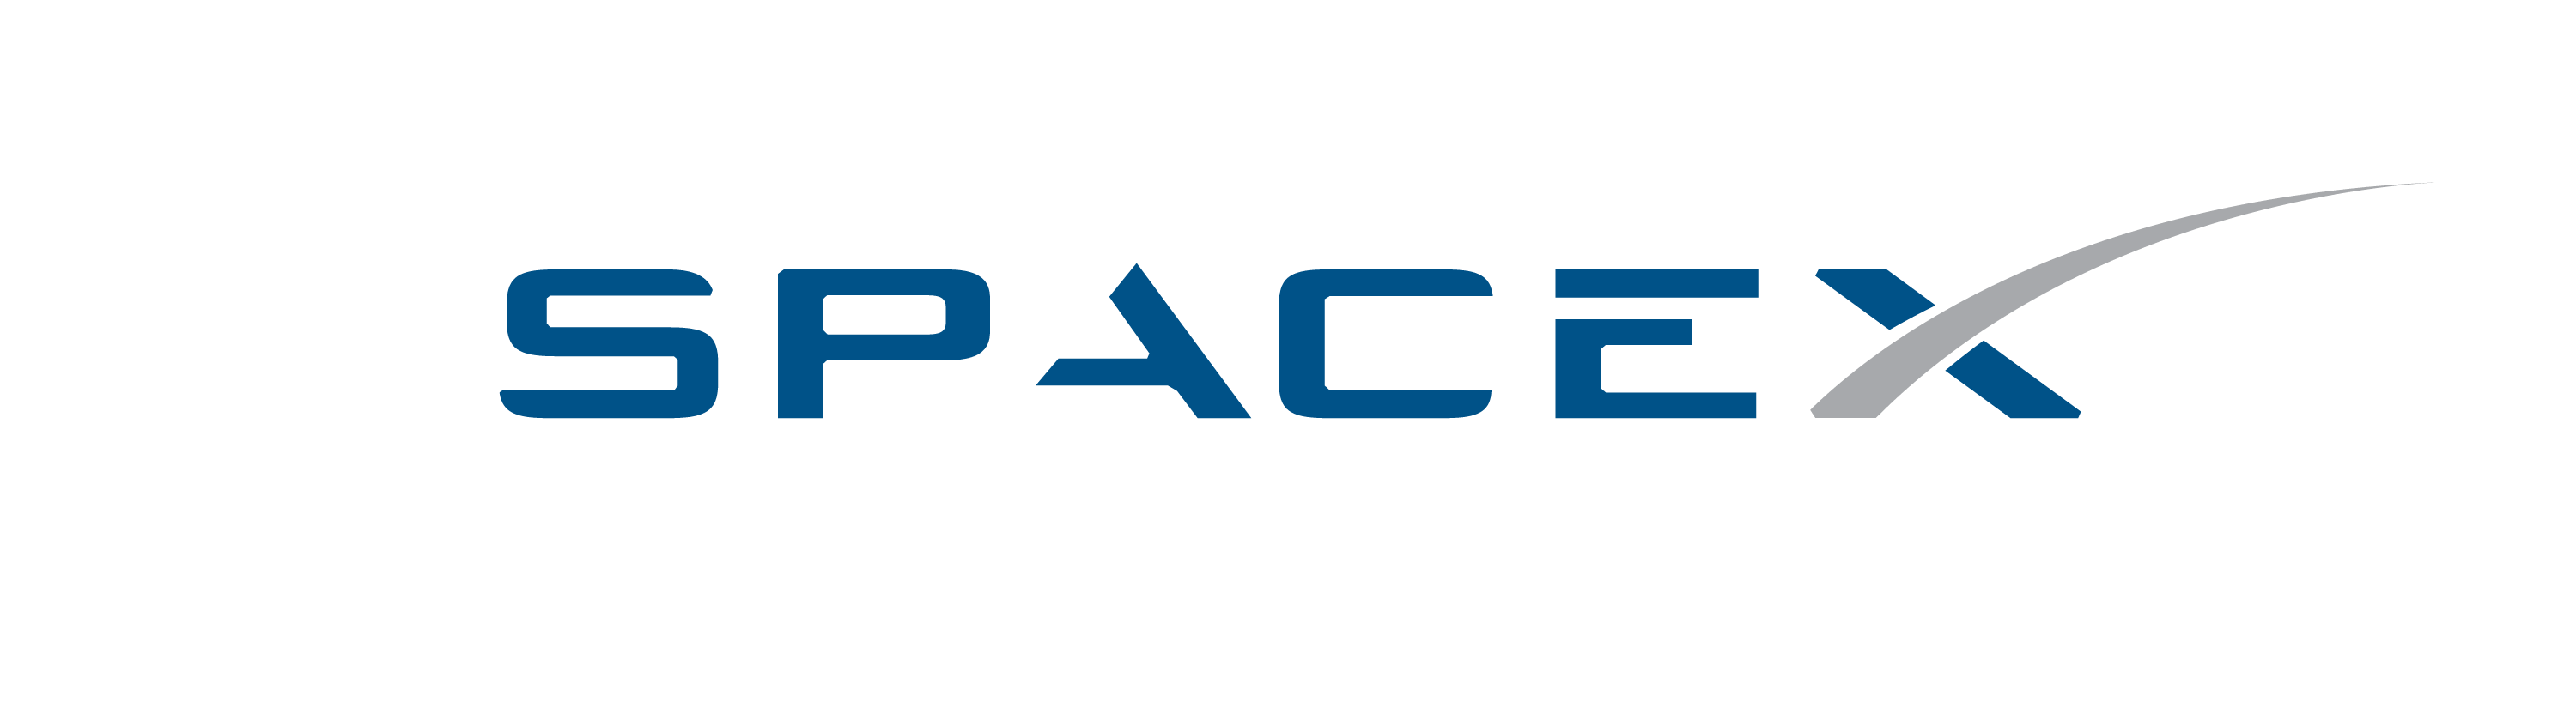 Space x png. Spacex logo transparent stickpng